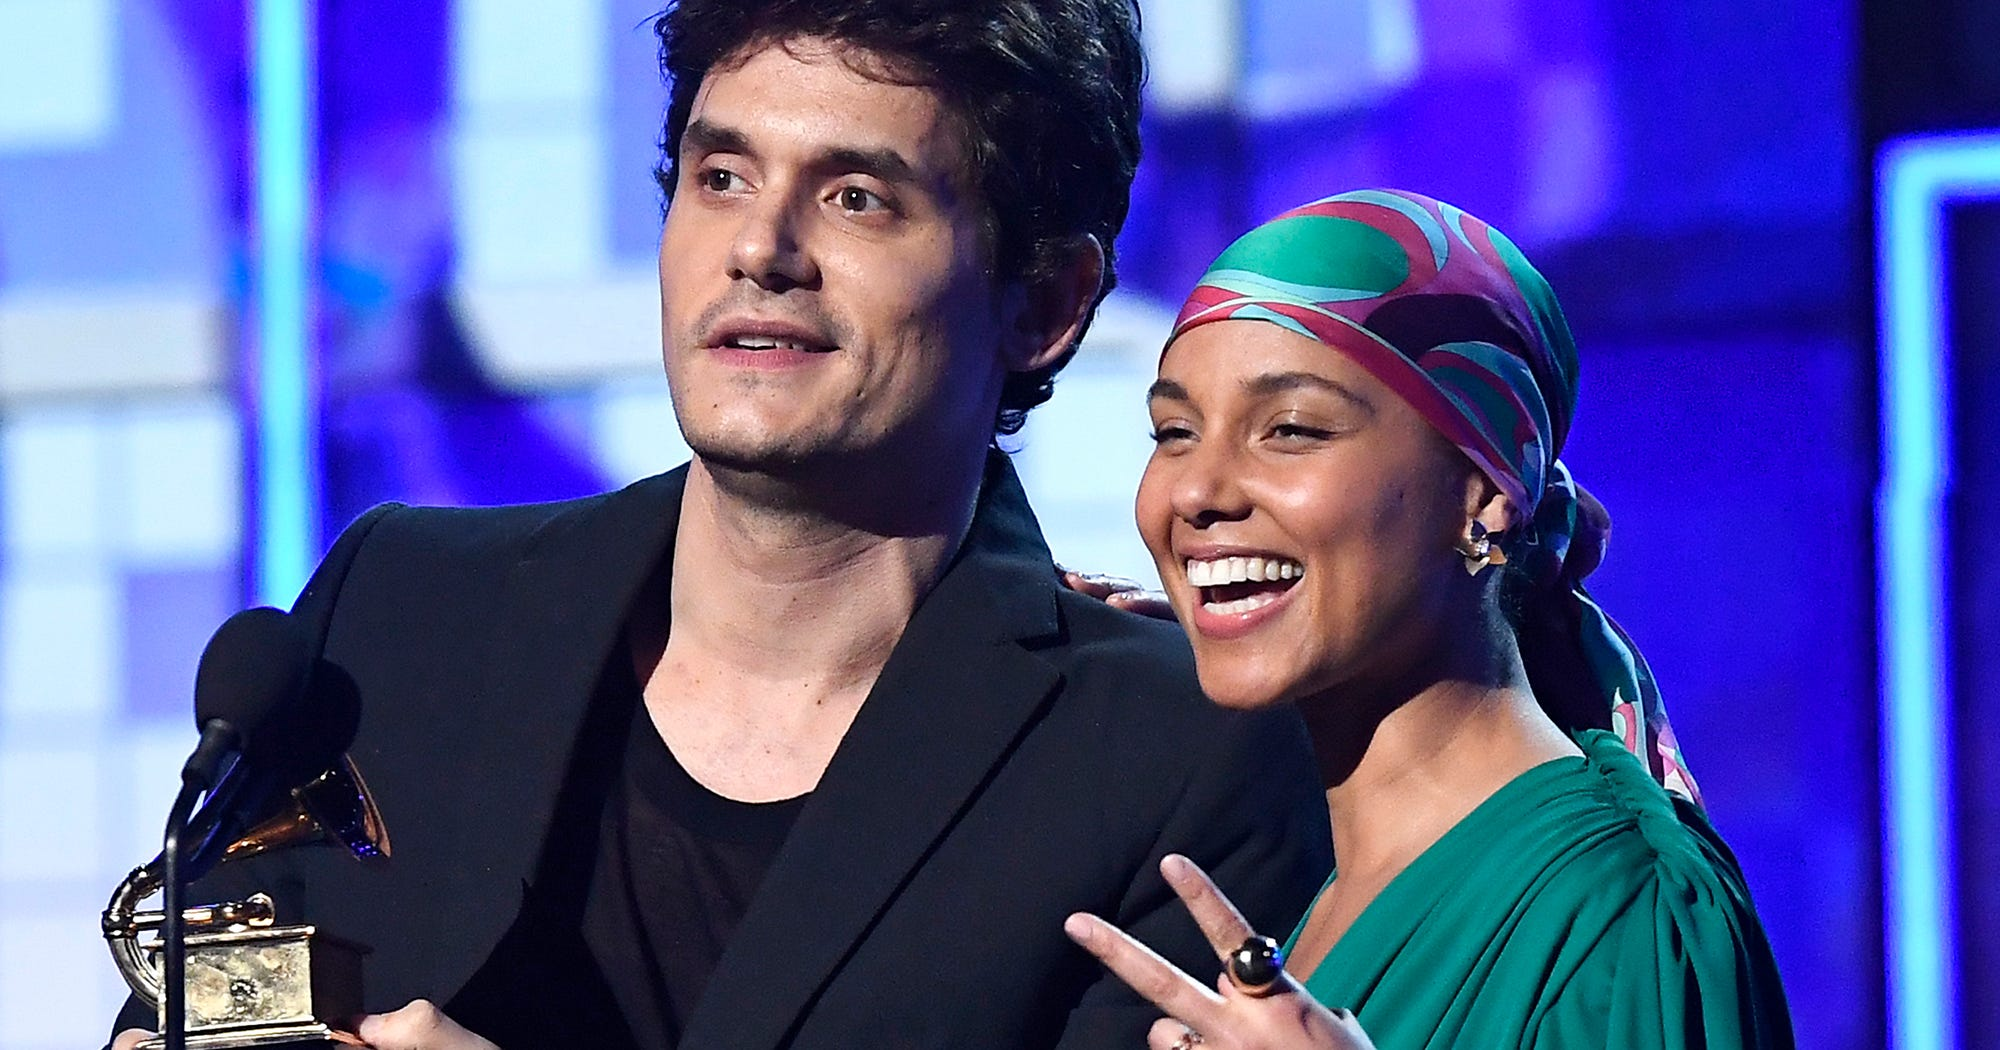 Somehow, John Mayer Gave Us The Sweetest Moment Of The Grammys